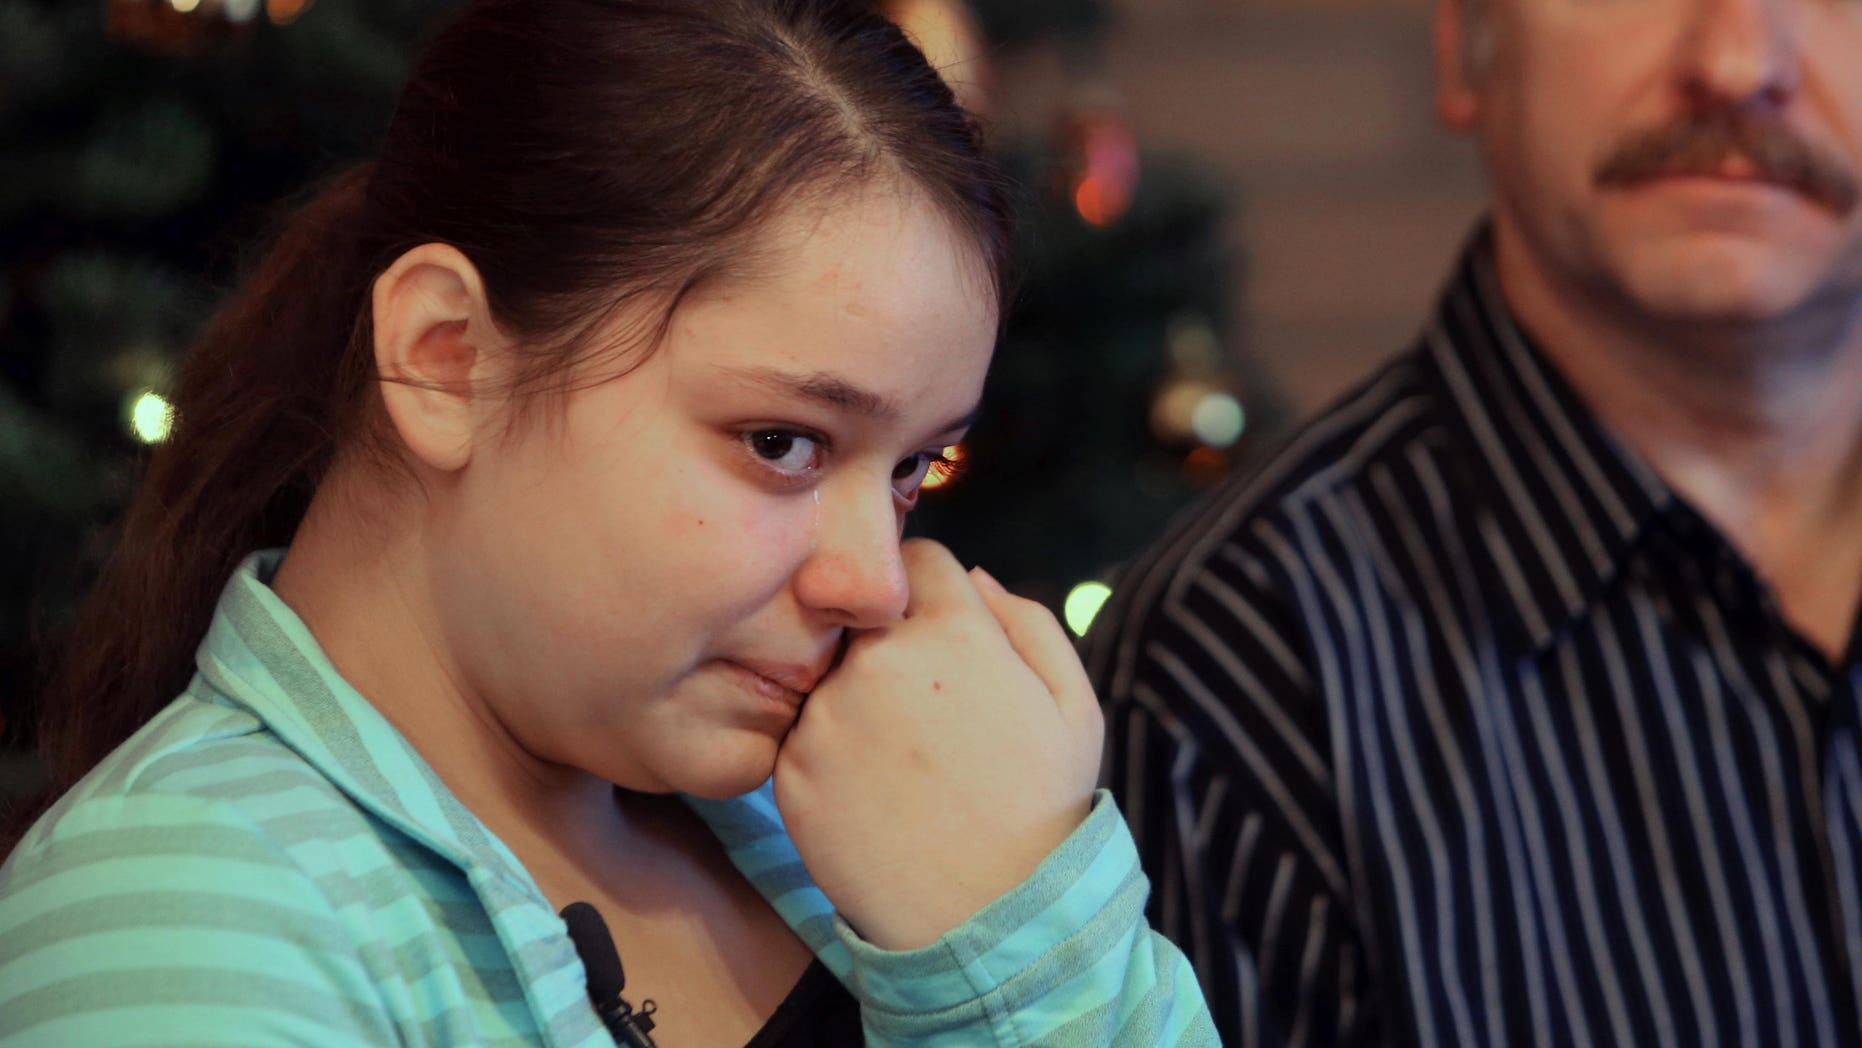 Dec. 22, 2012: Kristina Shevchenko, Clackamas Town Center shooting victim, talks to reporters for first time at her house as her father Veniamin looks on.